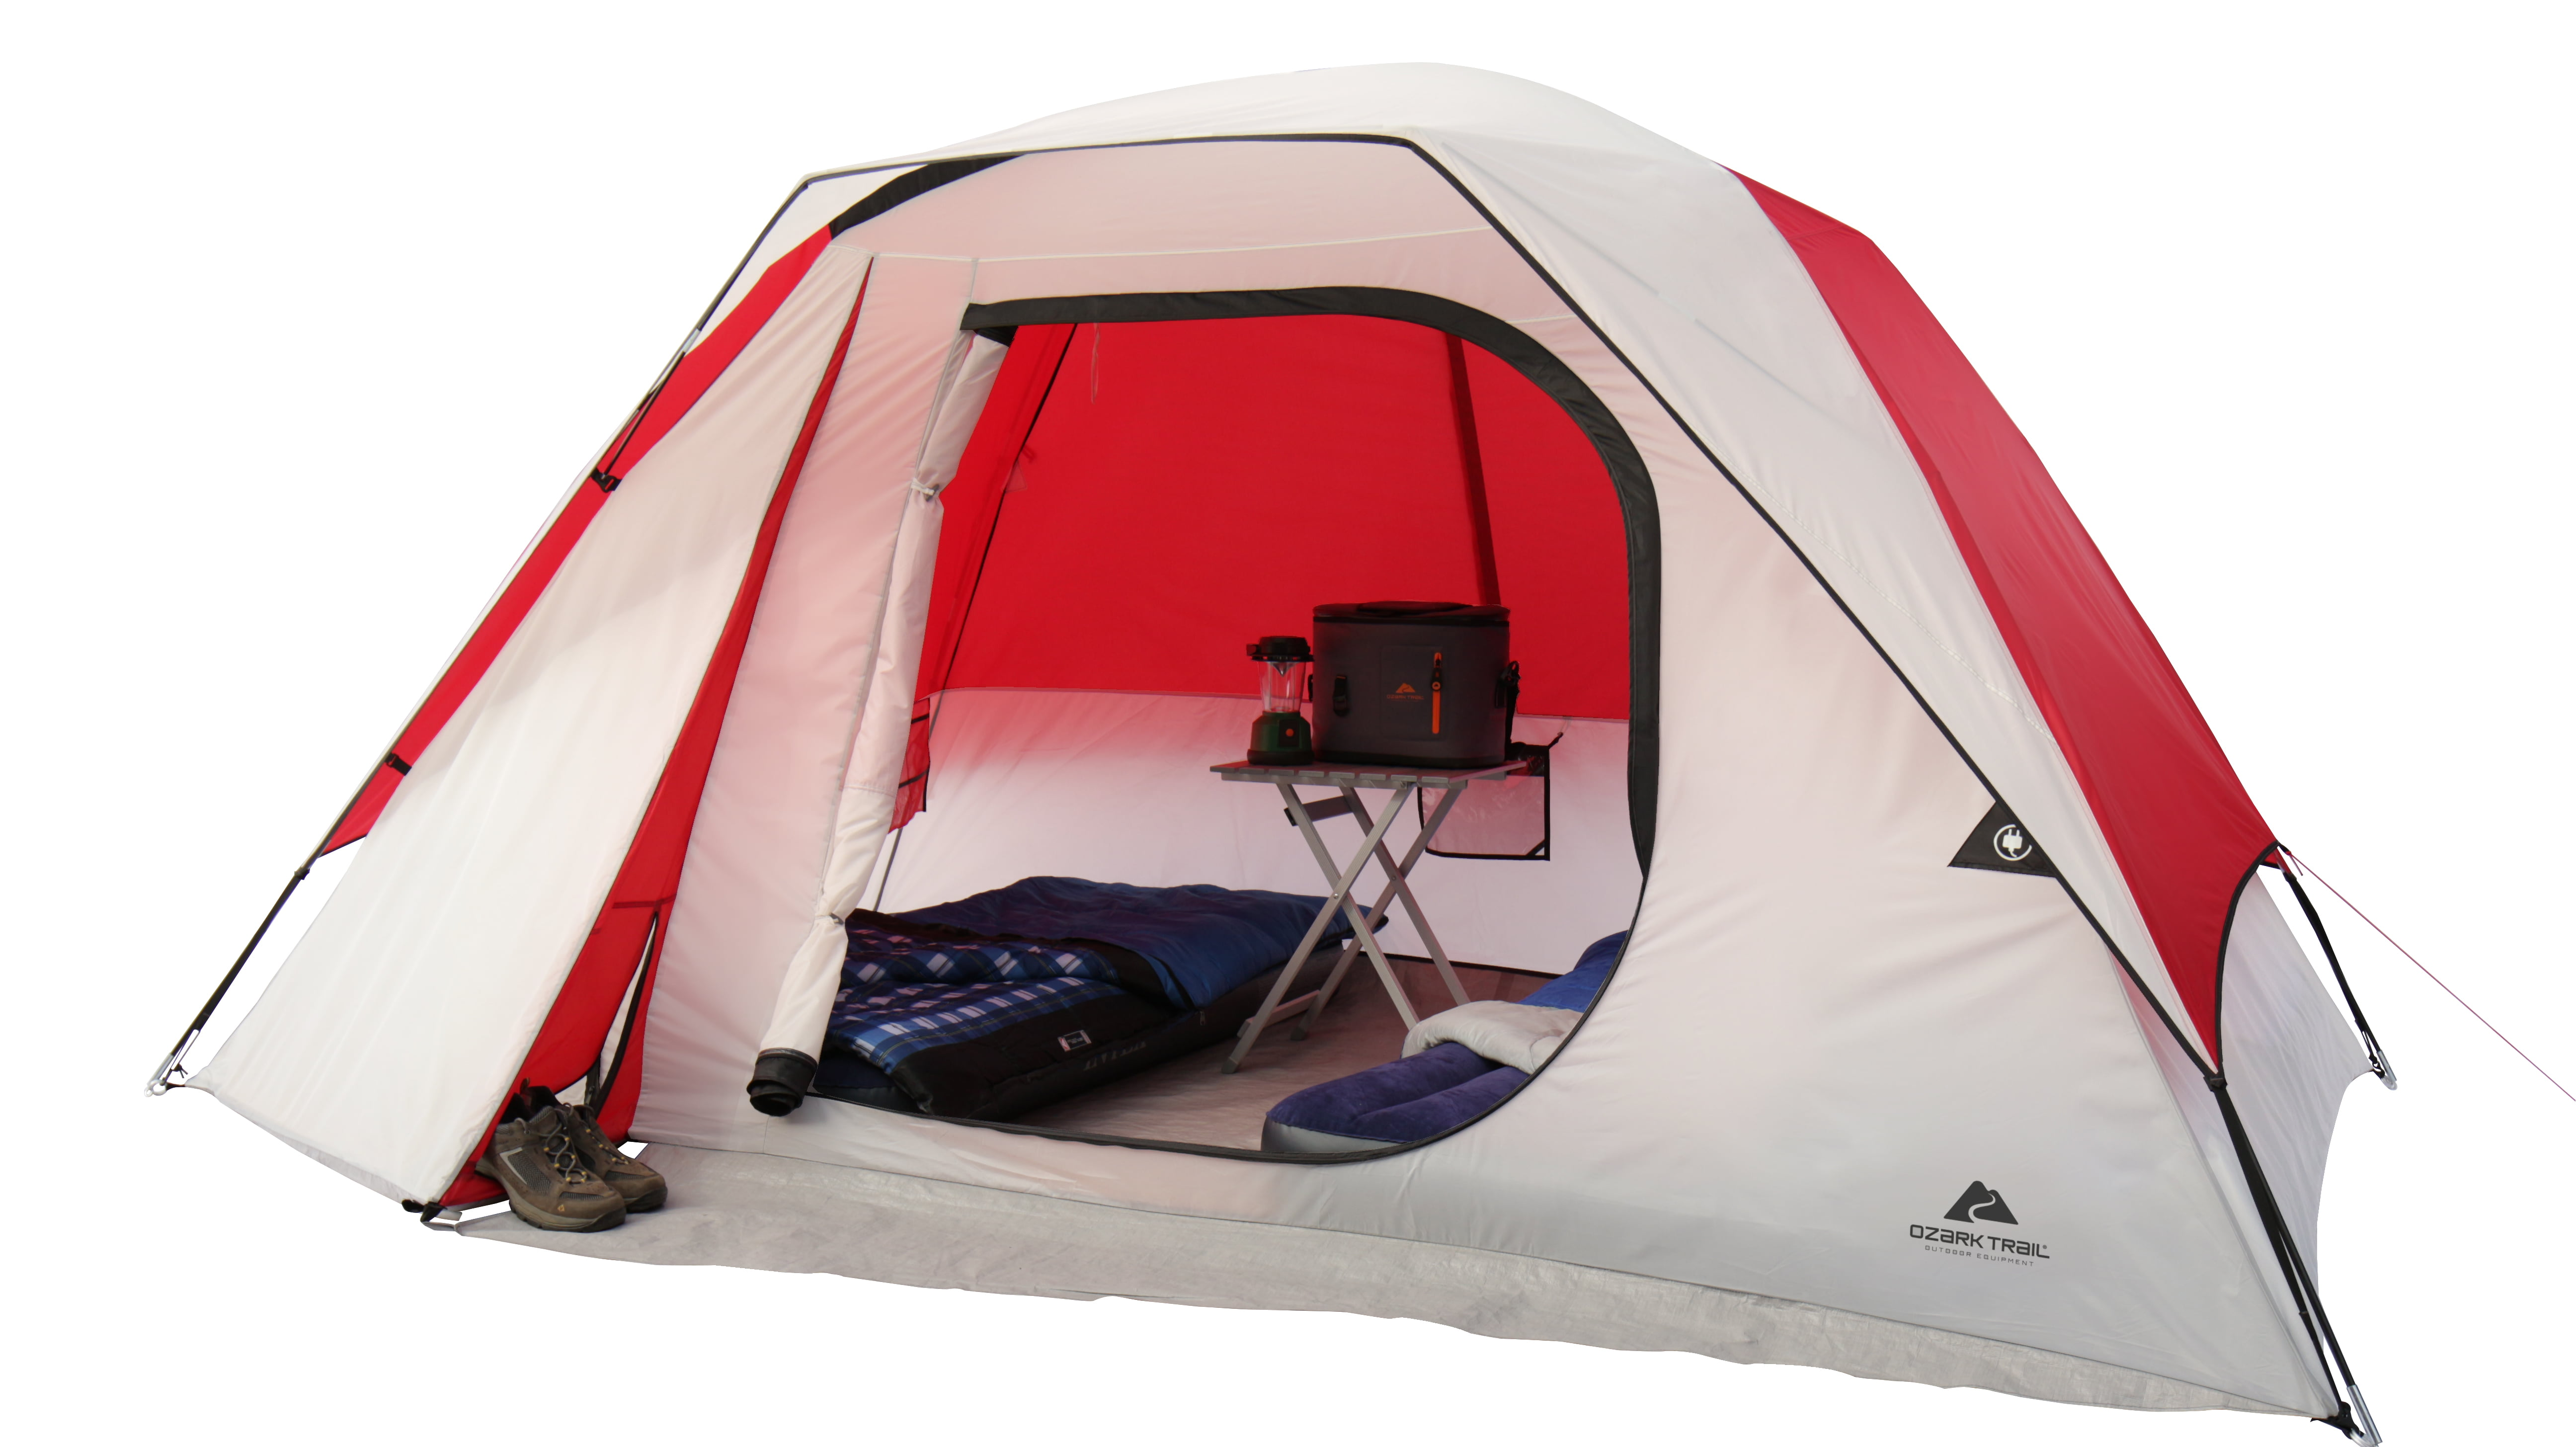 Ozark Trail Orange 2 person Dome Tent Camping Festival Outdoor Hiking Canopies